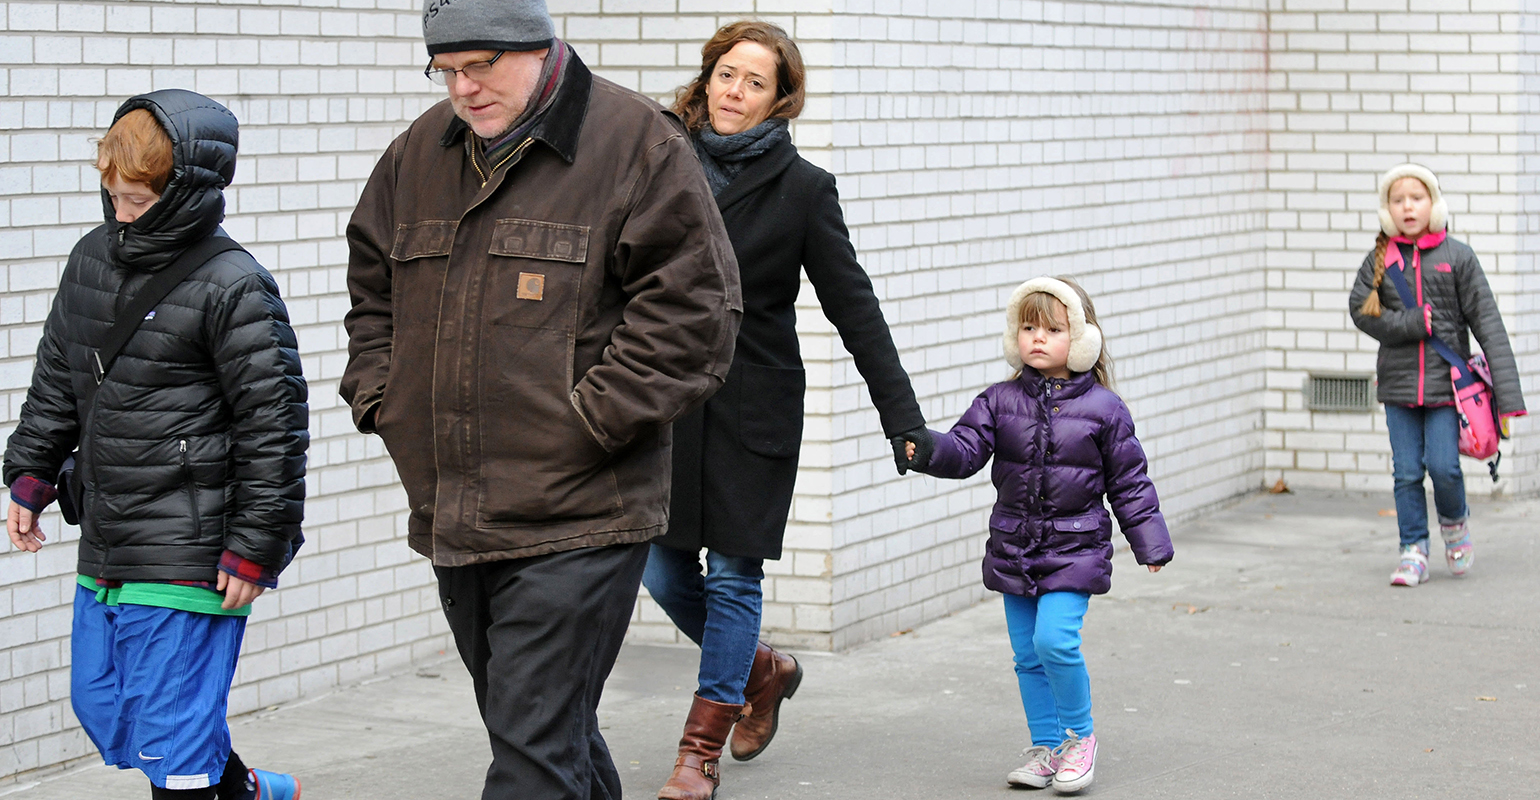 Philip Seymour Hoffman, Mimi O'Donnell and kids